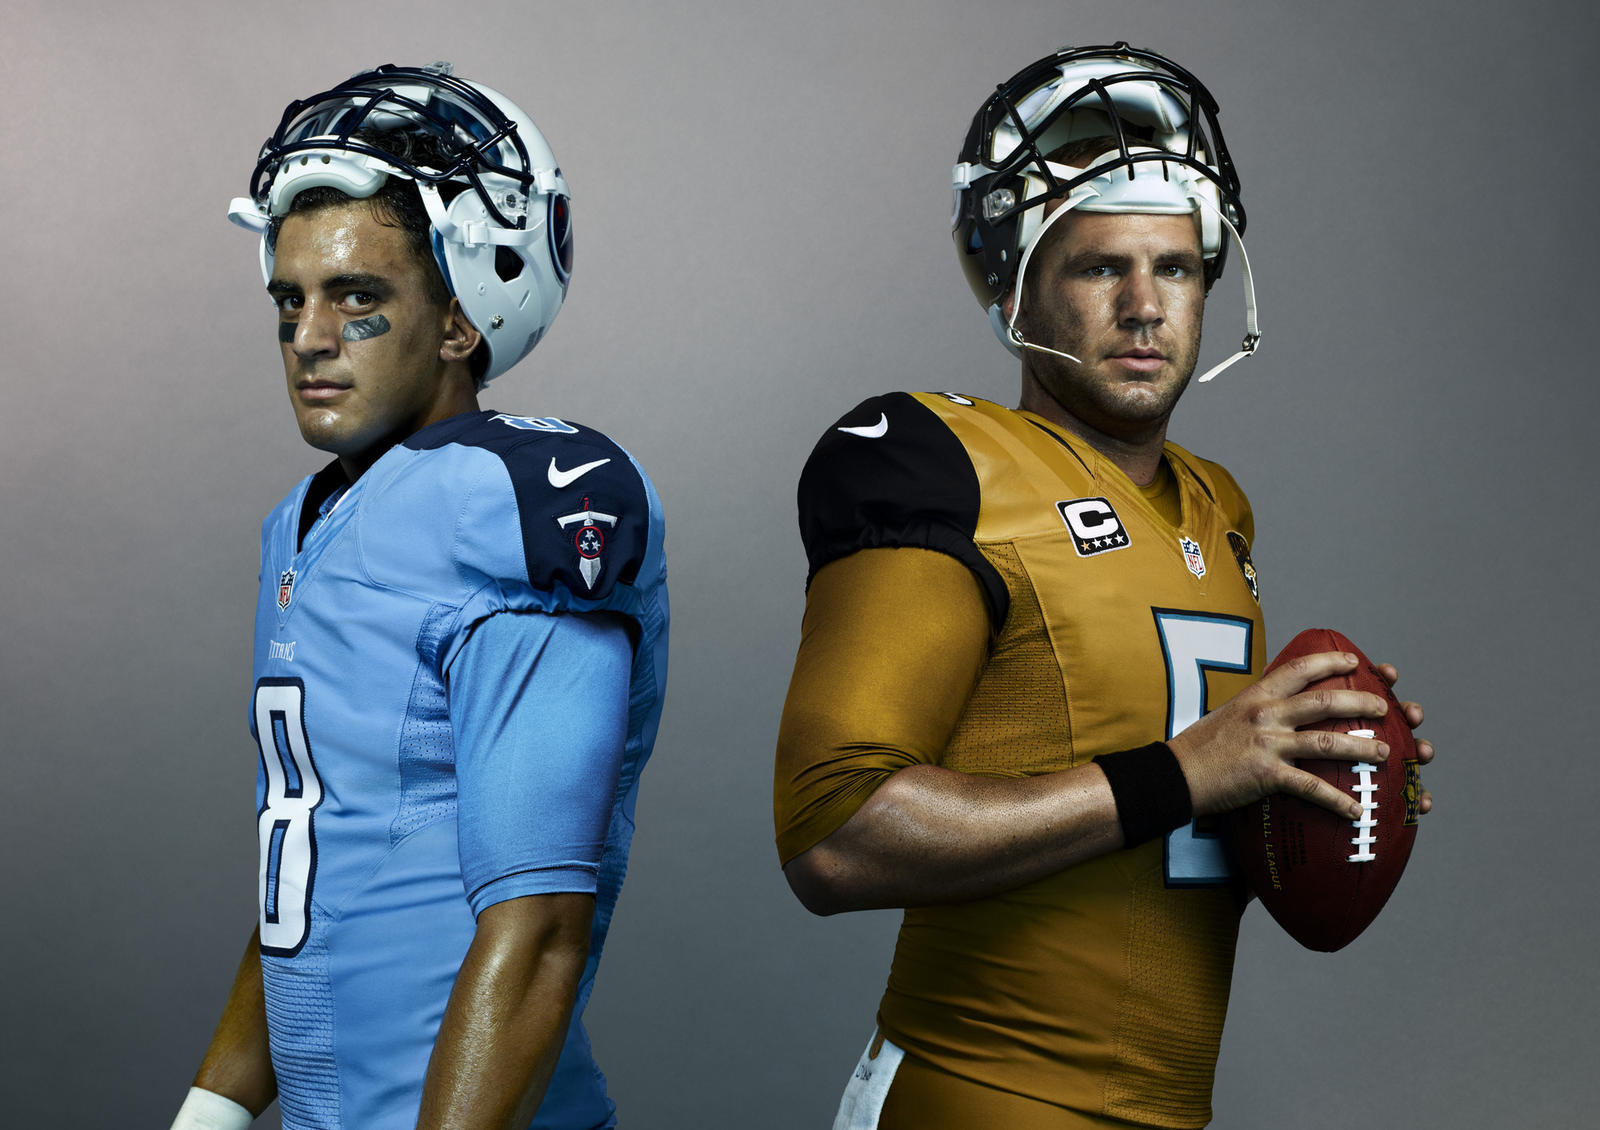 Nike News - Nike and NFL Flood Thursday Night Football With Color